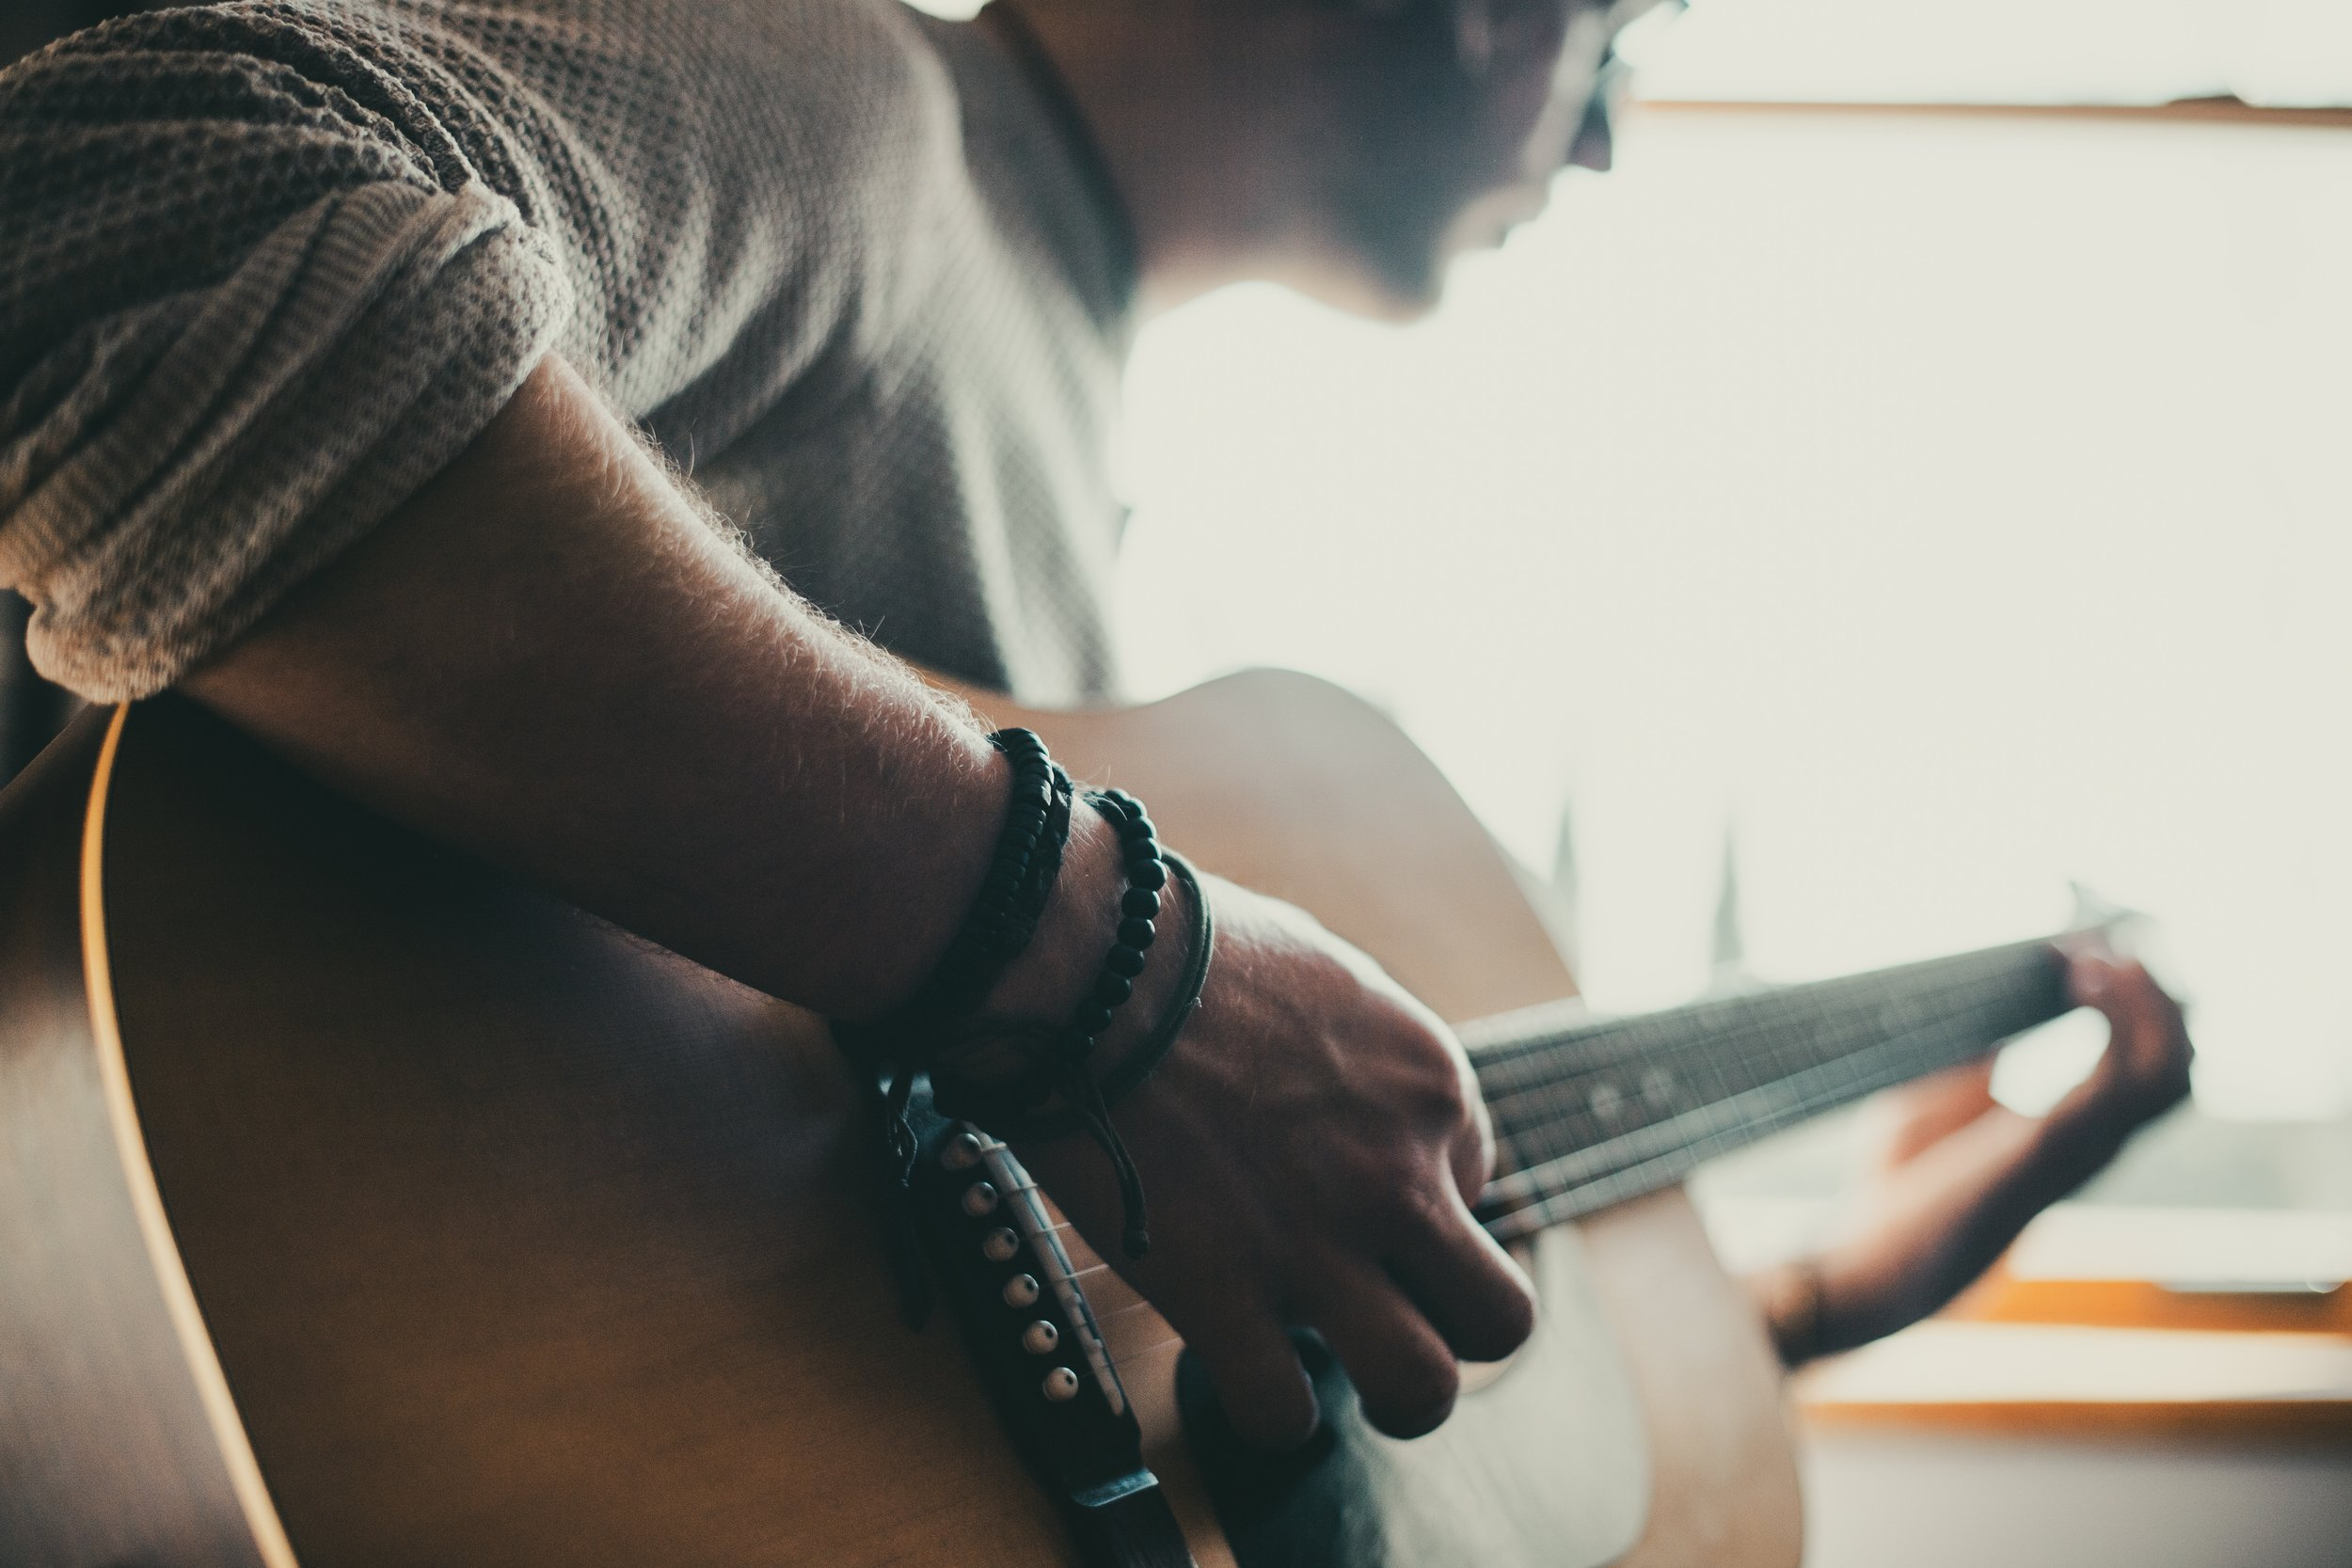 LEND US YOUR MUSICAL TALENTS -